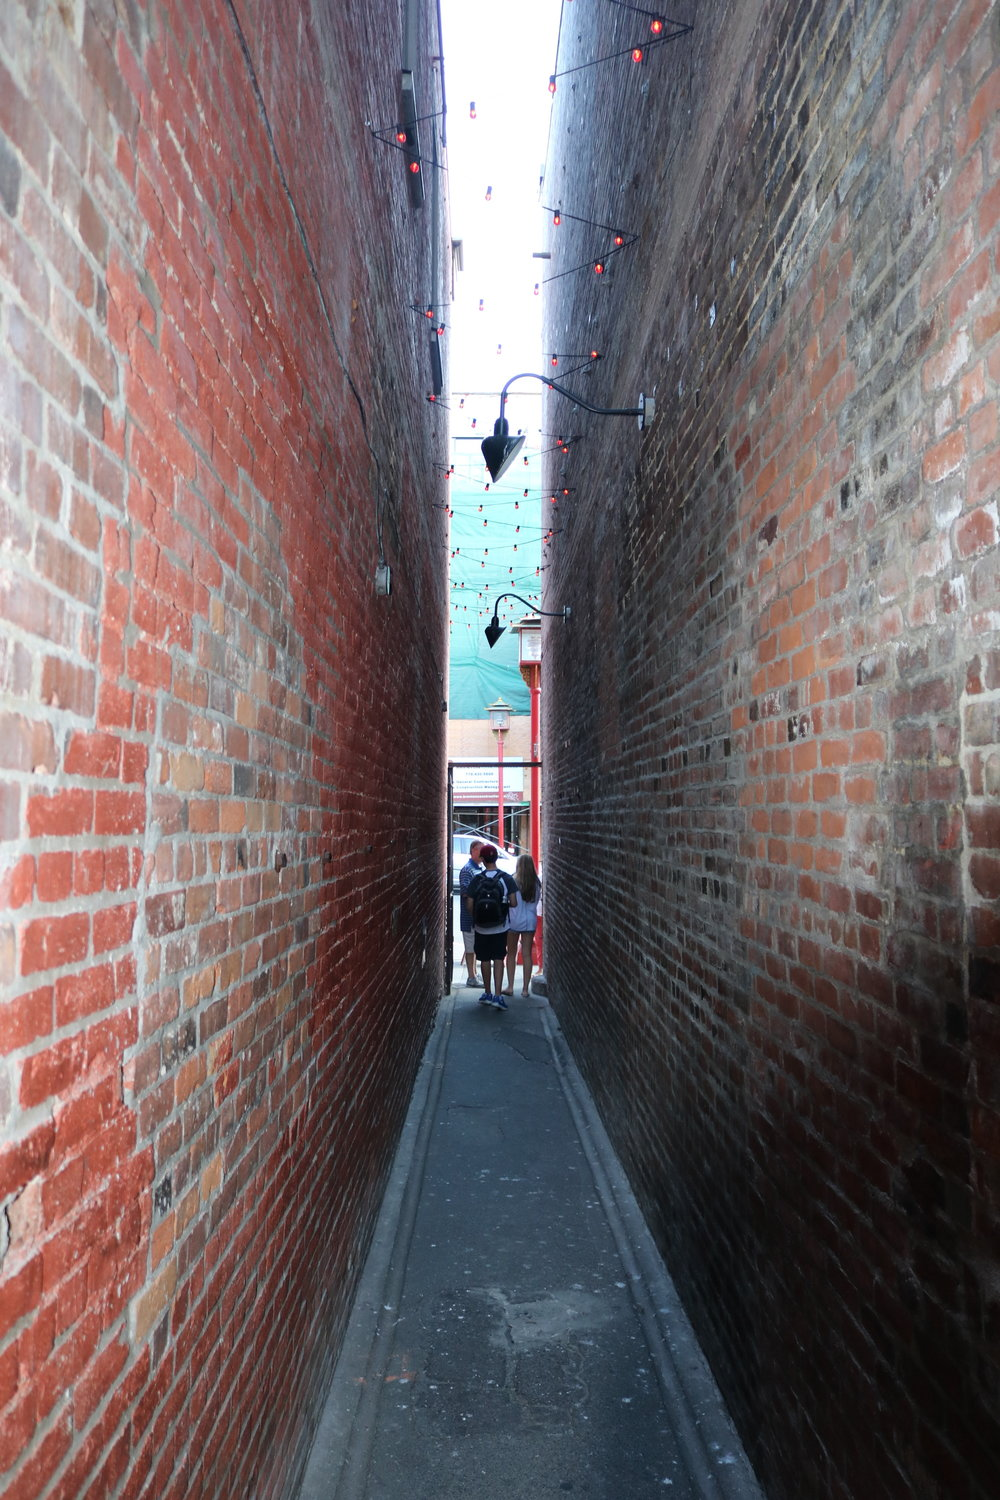 Fan Tan Alley is the narrowest street in Canada